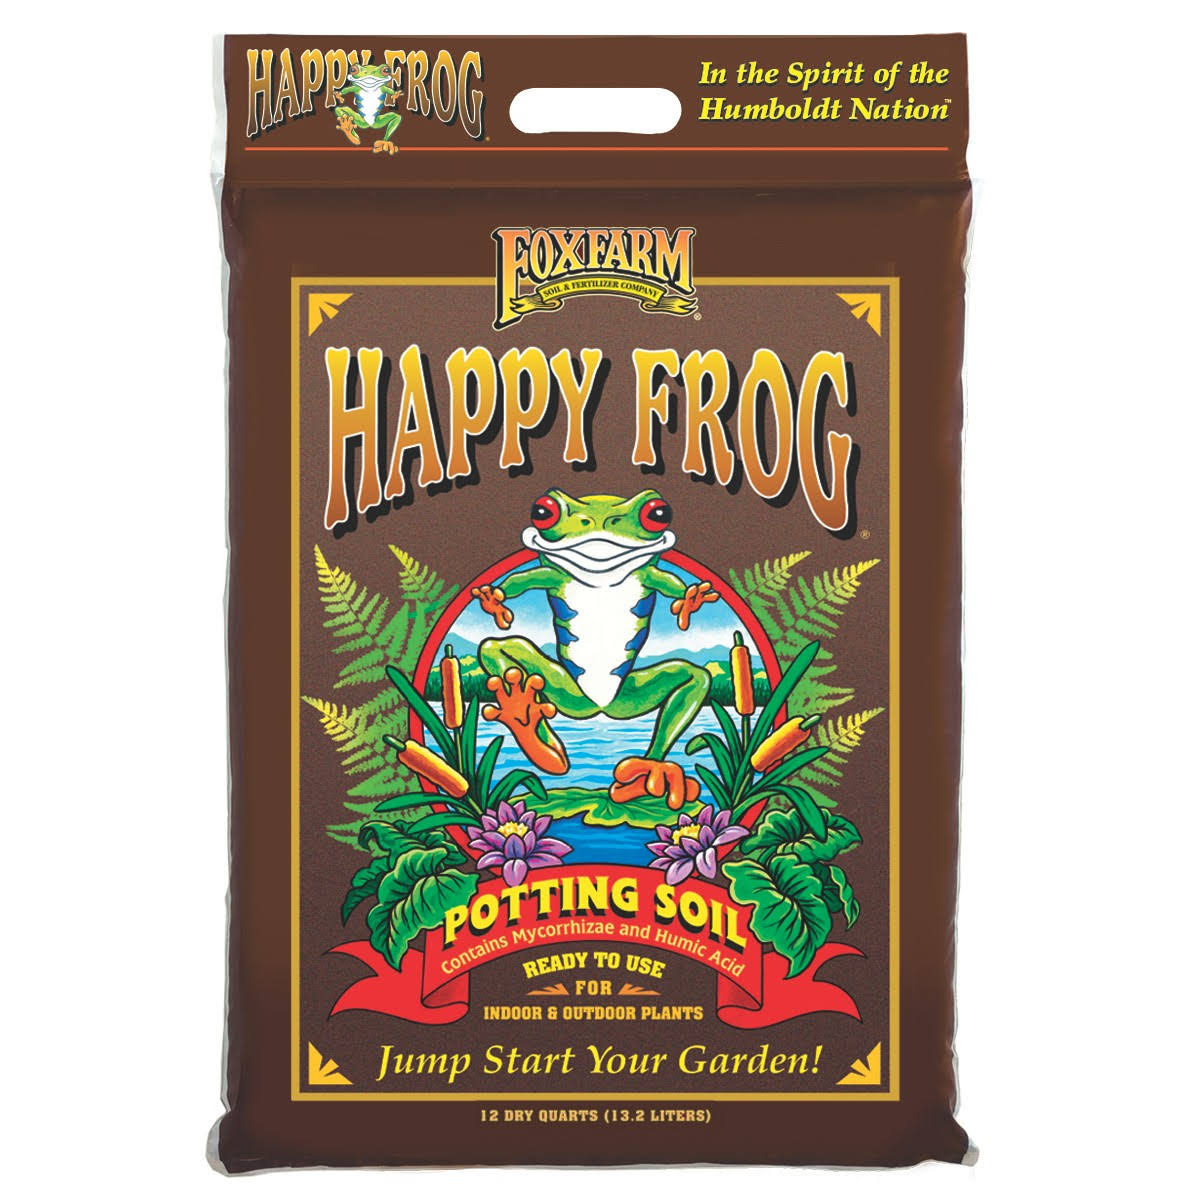 Fox Farm Happy Frog Organic Potting Soil